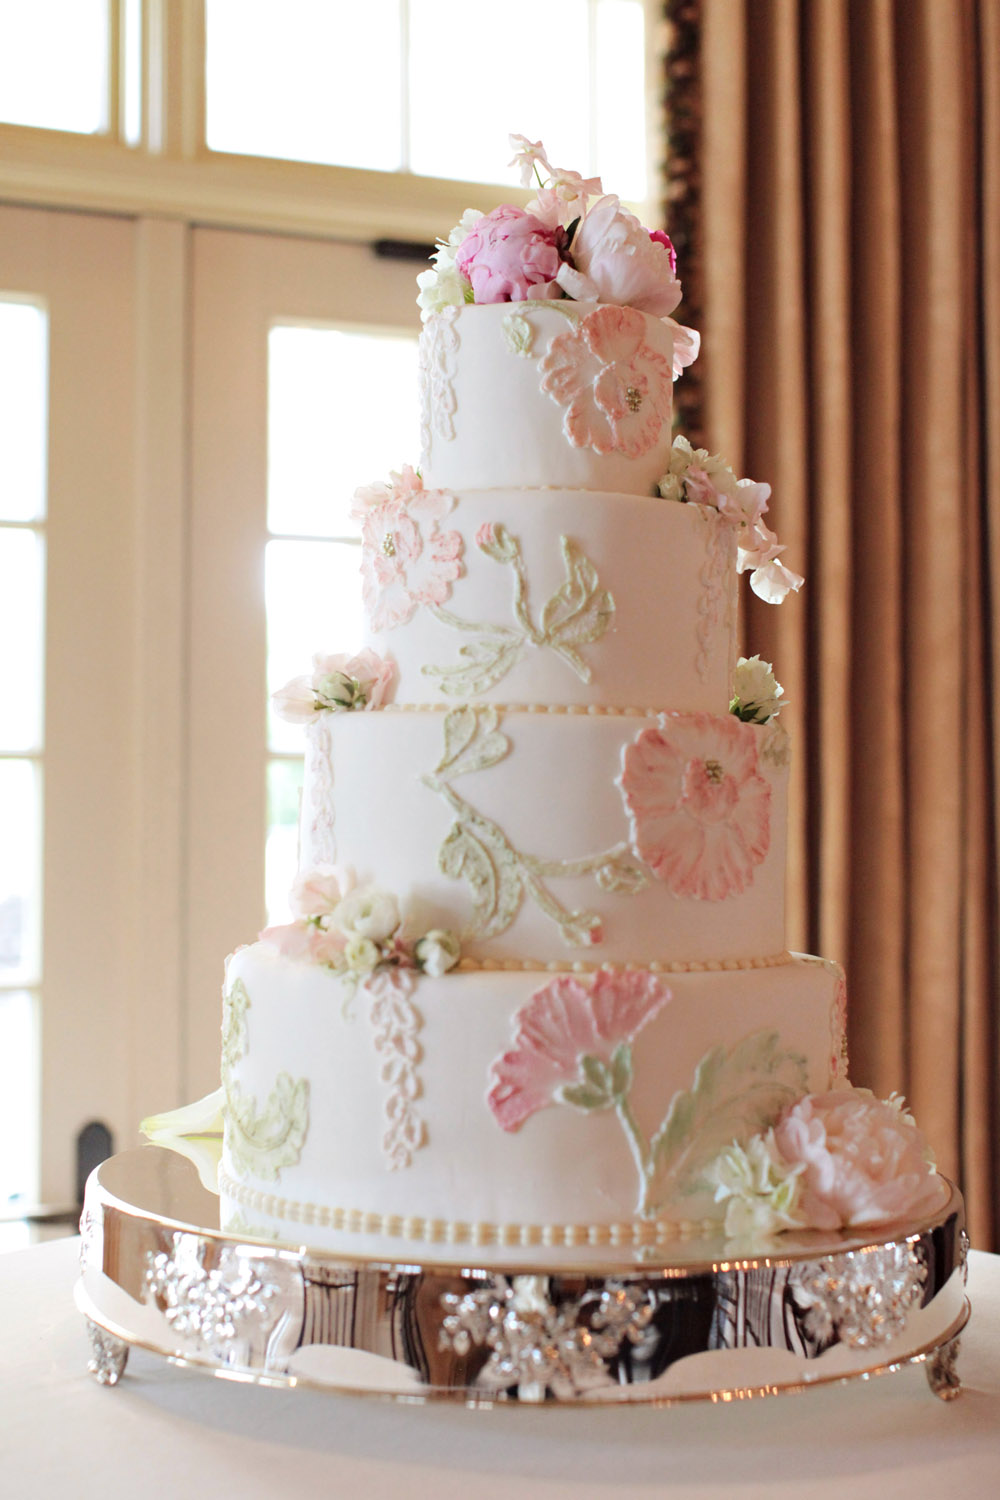 classic wedding cake with pink and green icing flowers elizabeth anne designs the wedding blog. Black Bedroom Furniture Sets. Home Design Ideas